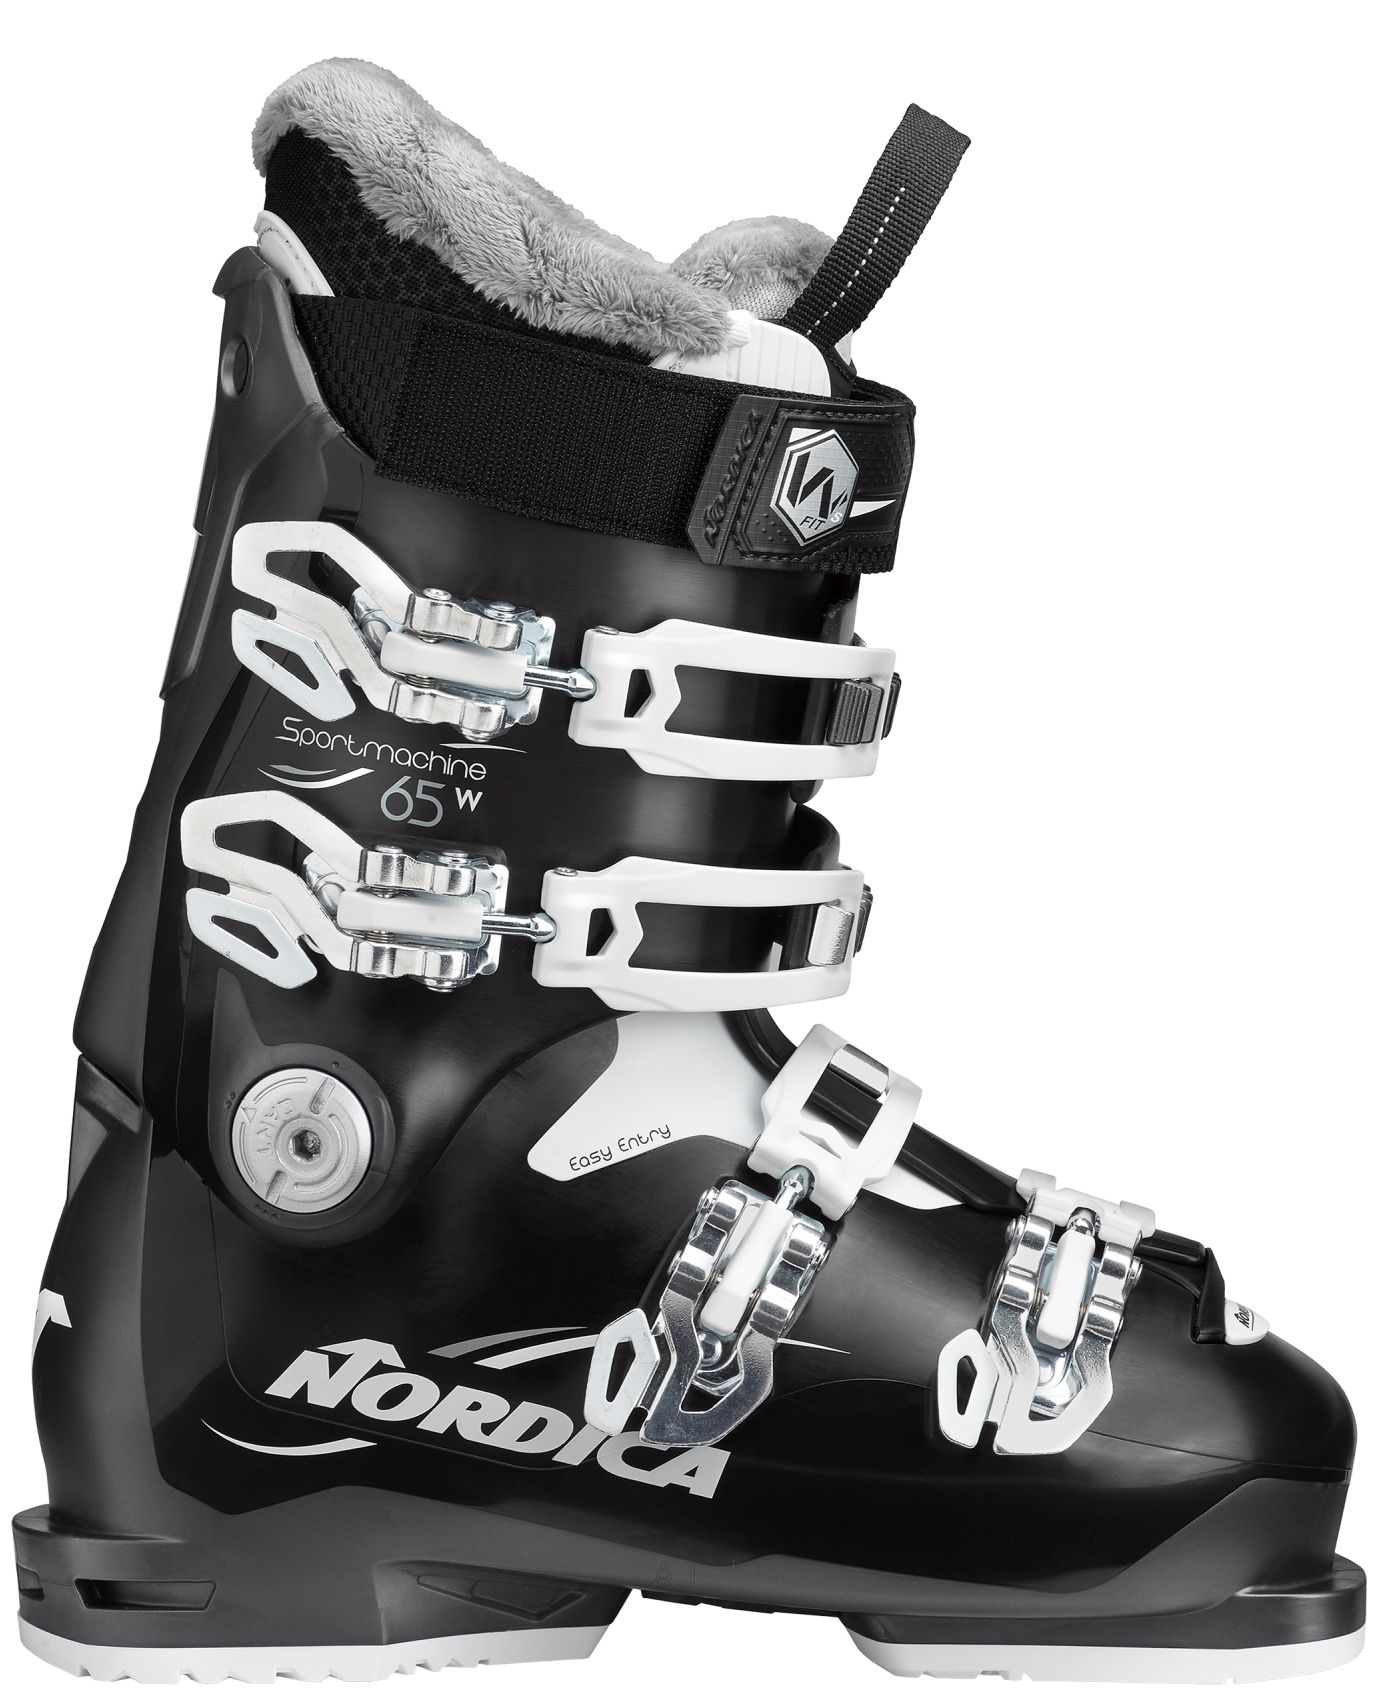 Nordica Sportmachine 65 W - black-anthracite-white 240